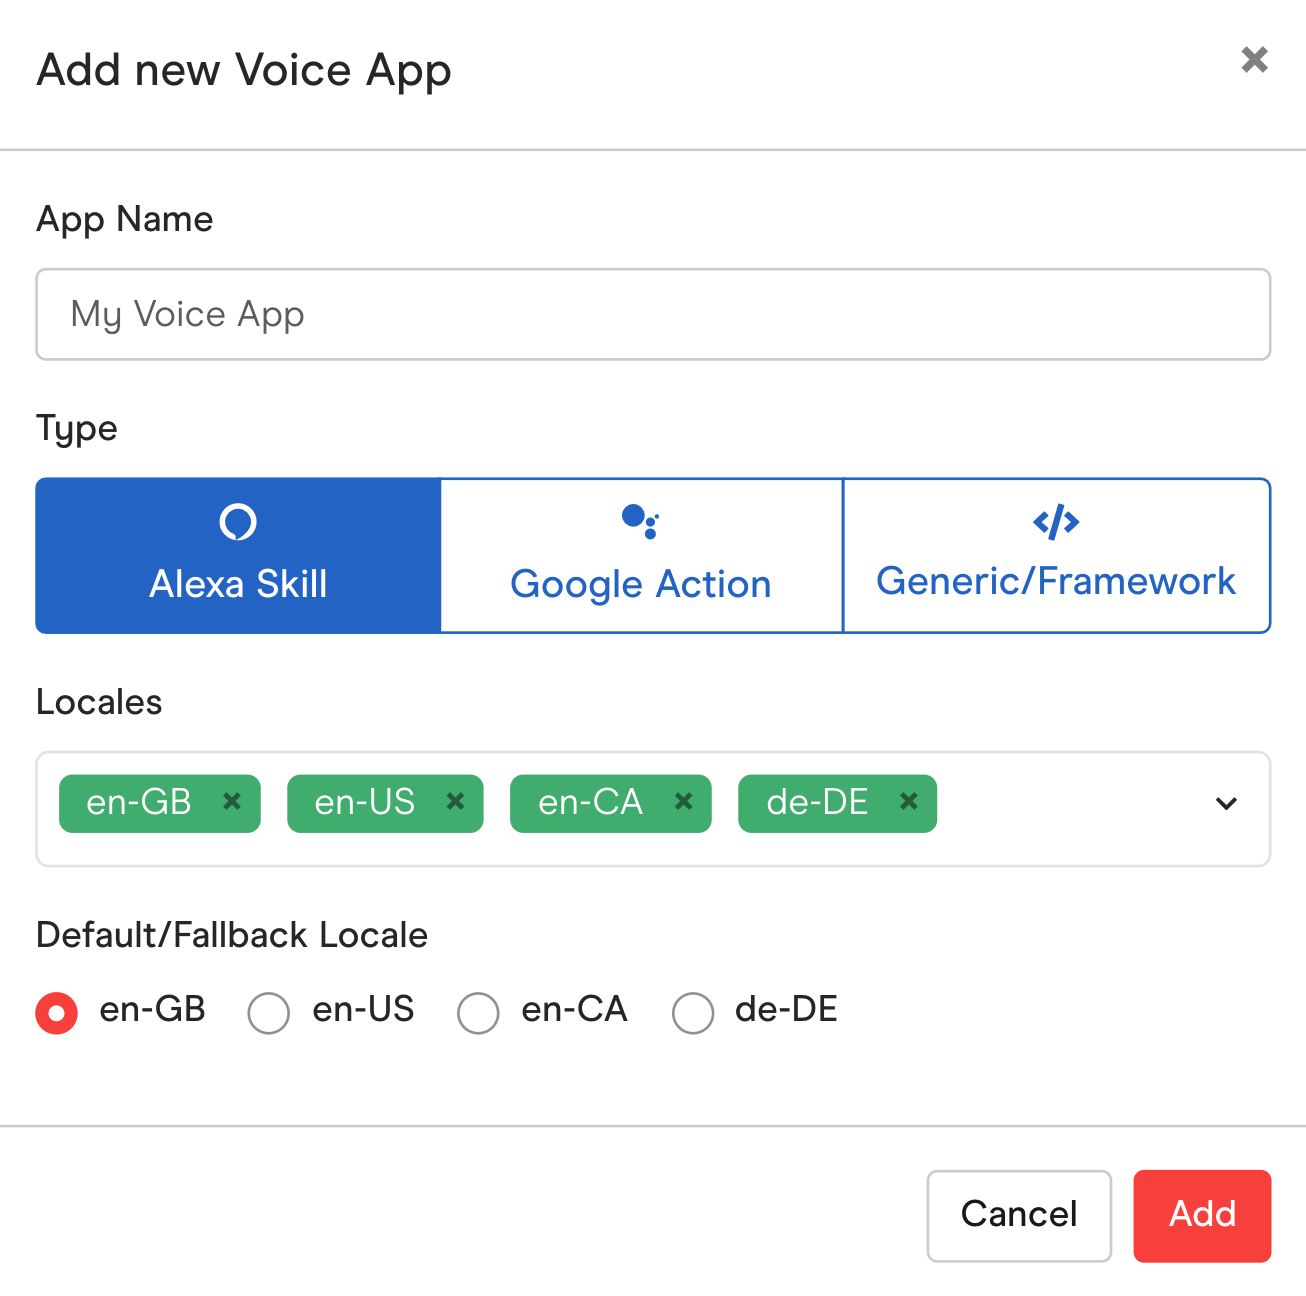 Create new Voice App